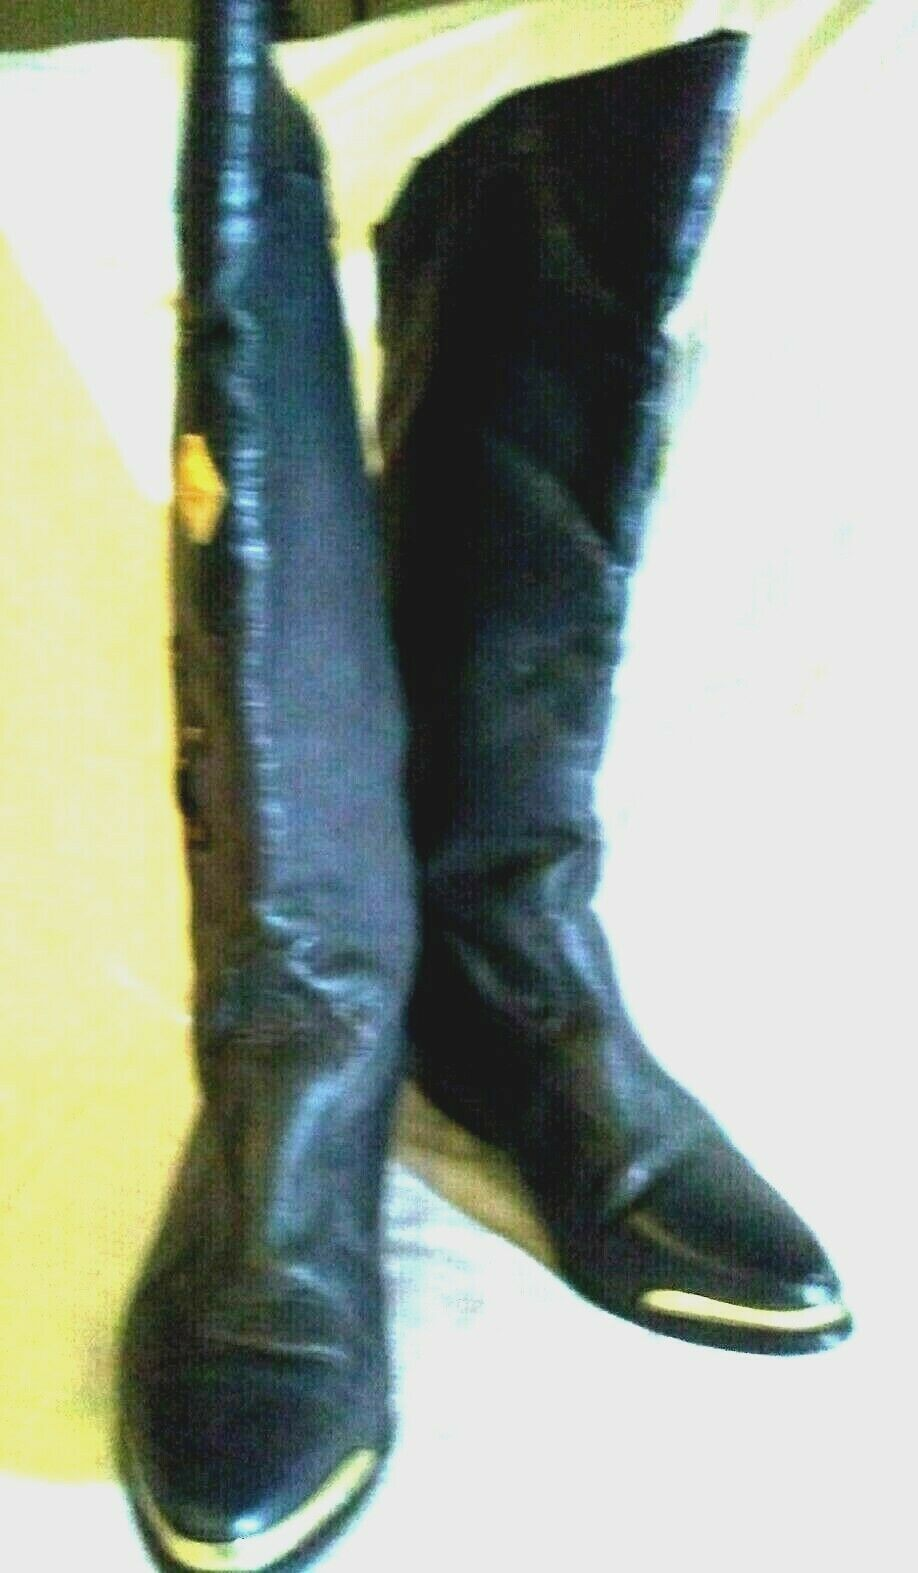 WILD PAIR BLACK LEATHER COWBOY BOOTS gold METAL TOE RAND & ACCENTS SIZE 5.5 B US